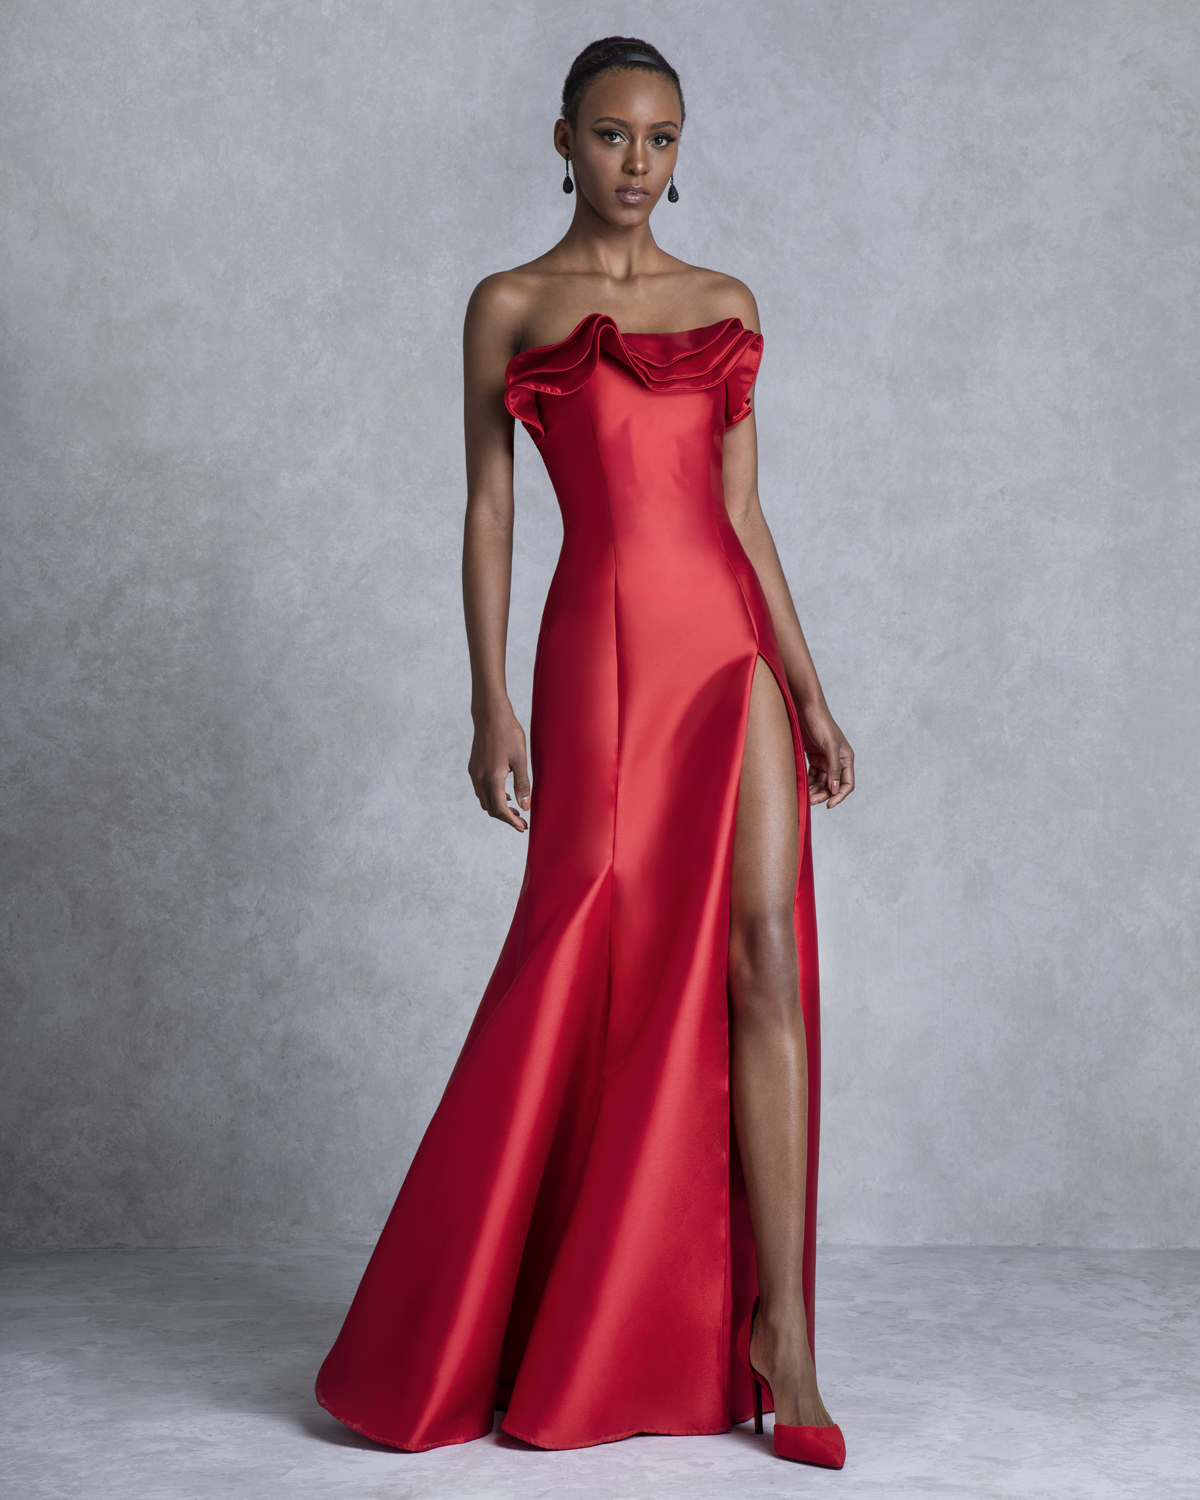 Long evening strapless dress with ruffles